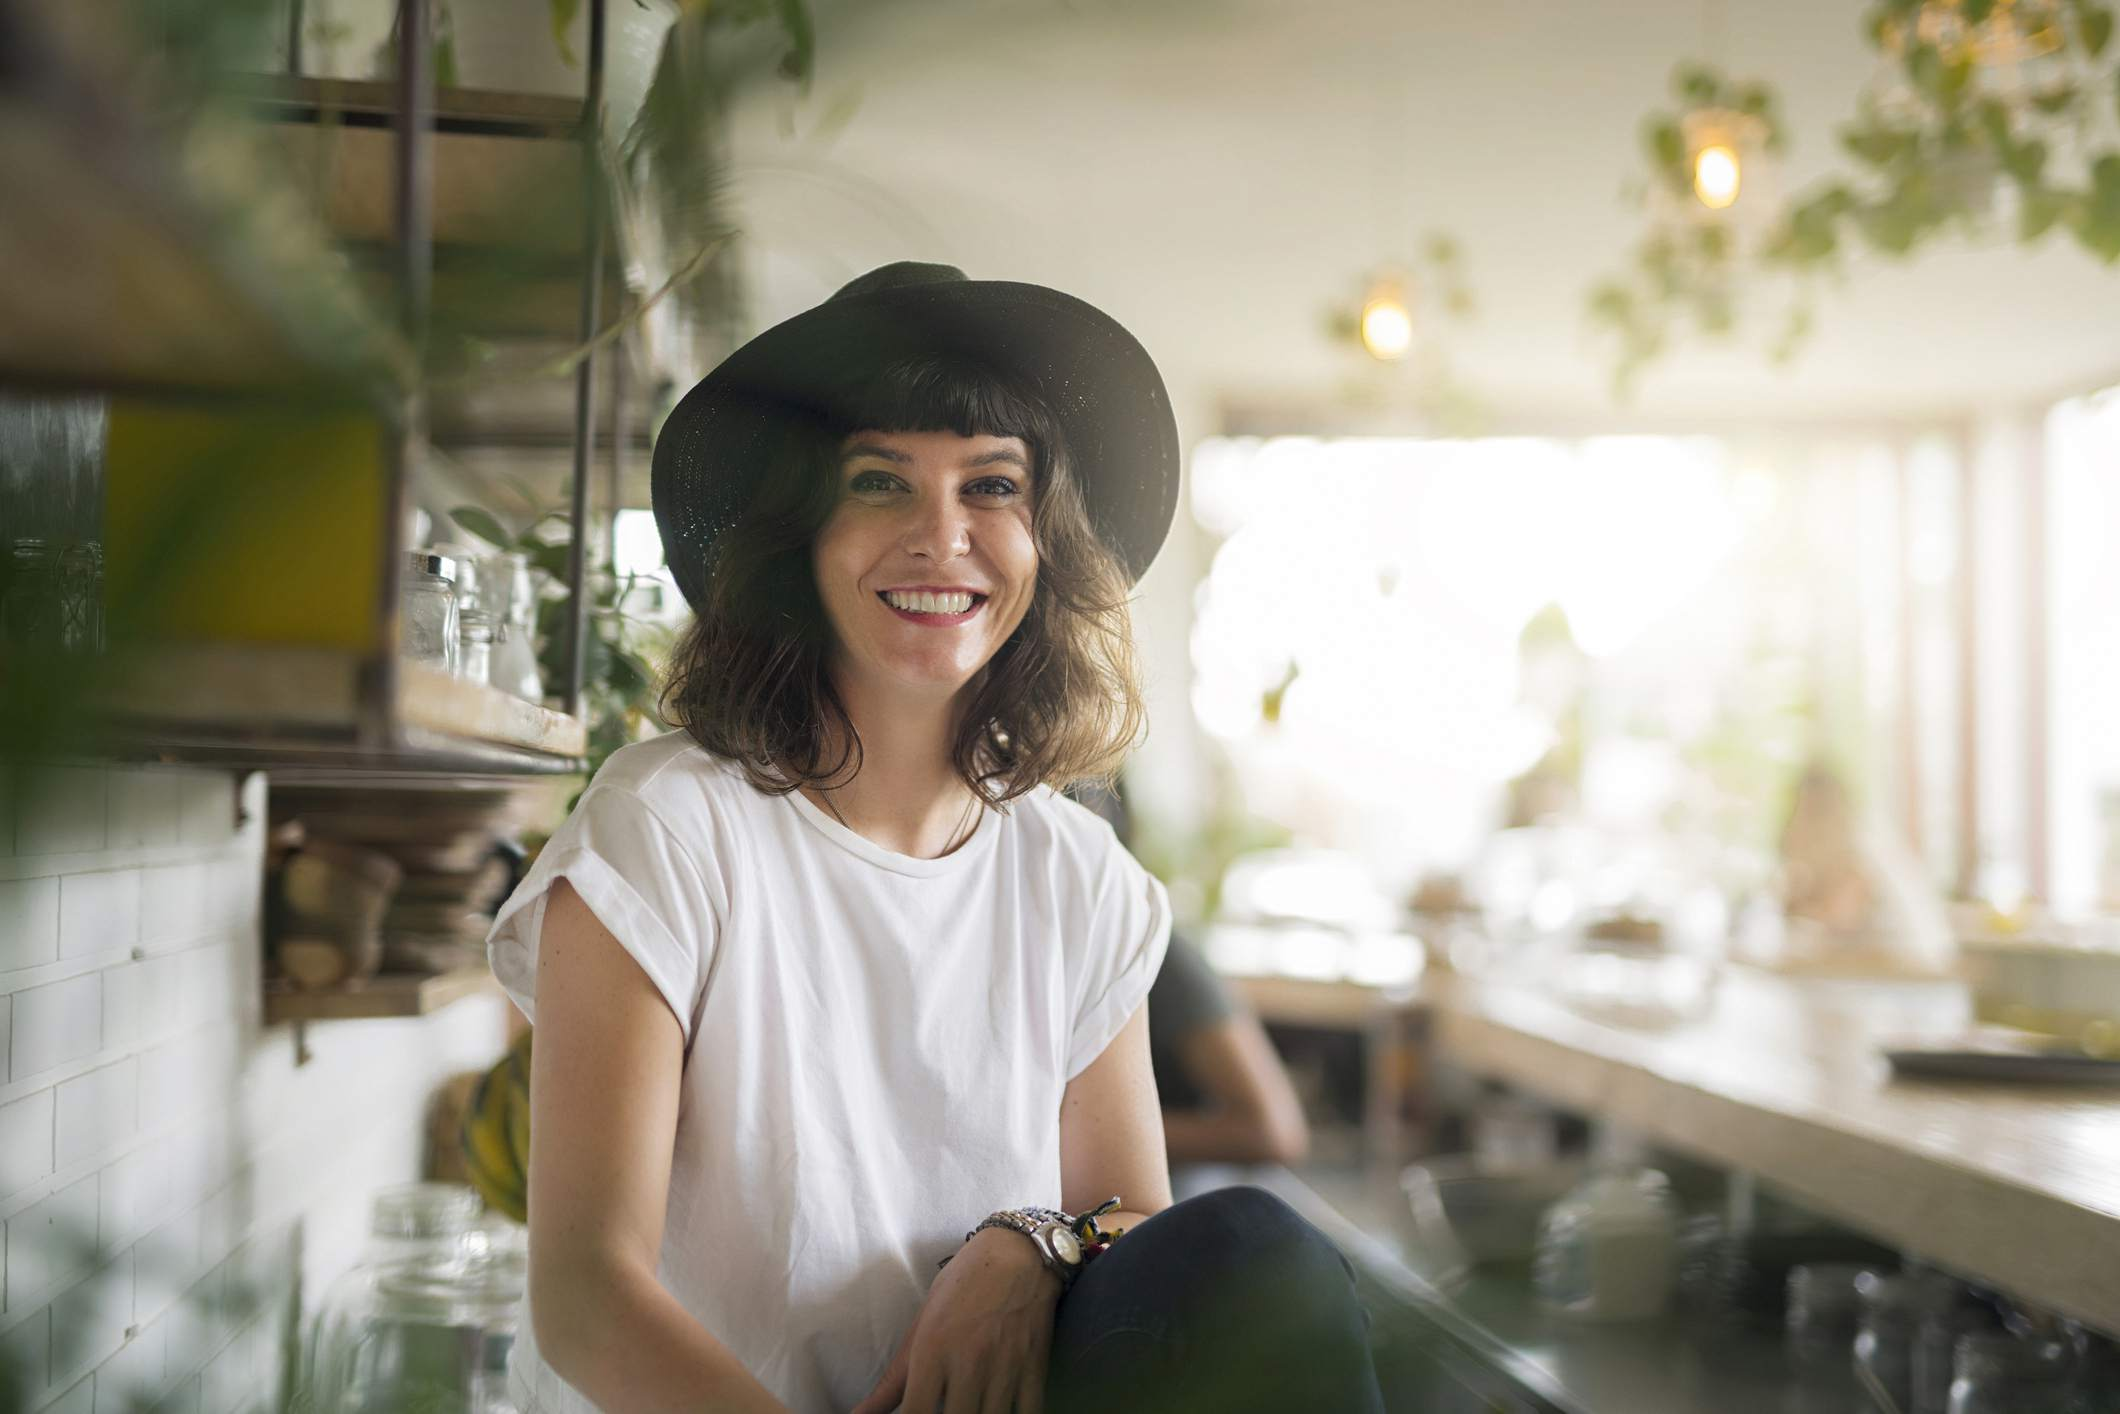 Portrait of woman with black hat behind the bar in a cafe